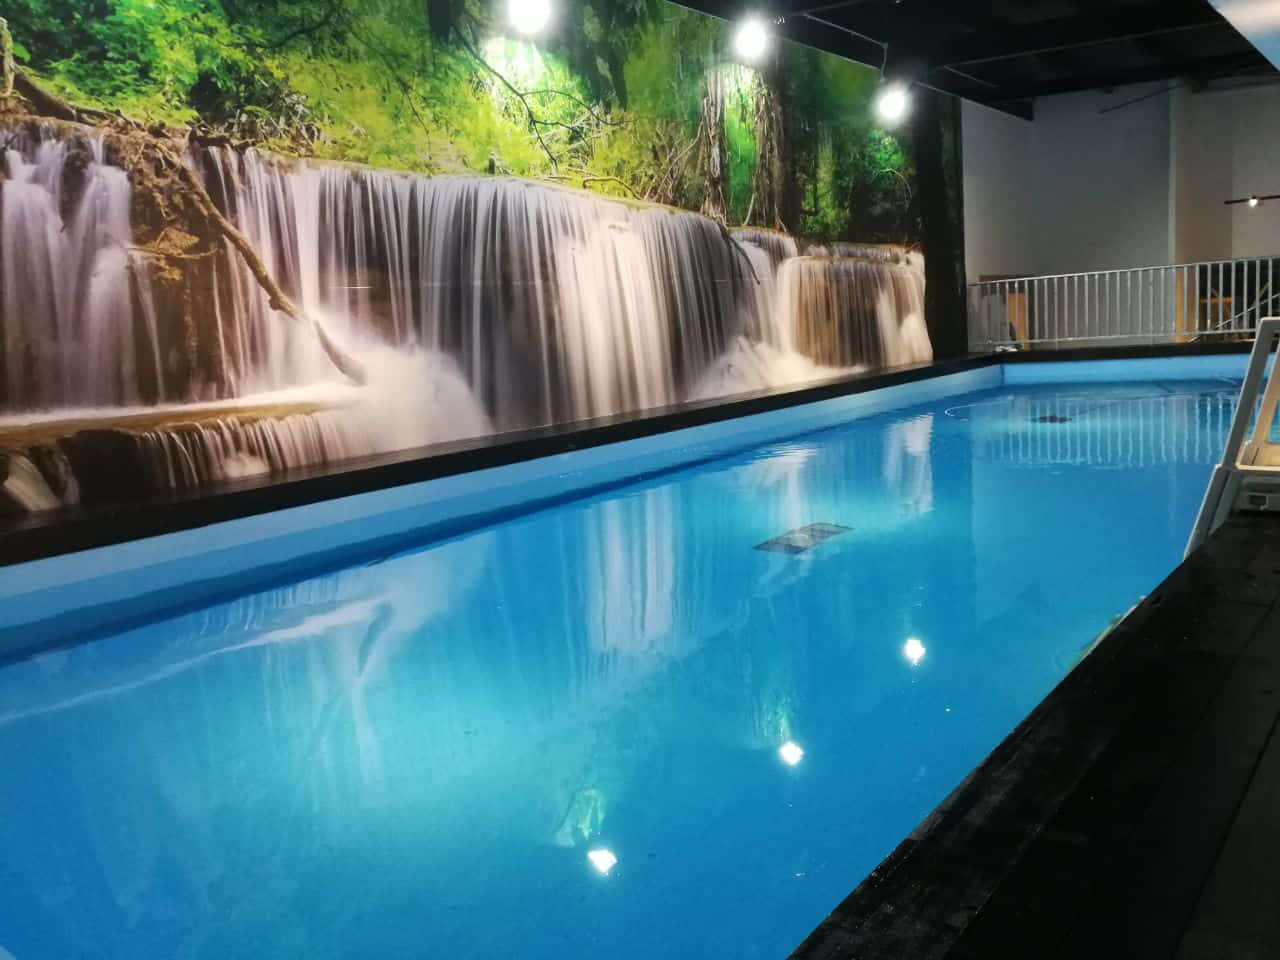 happy fish indoor heated pool jurong east - Cool Indoor Pools With Fish